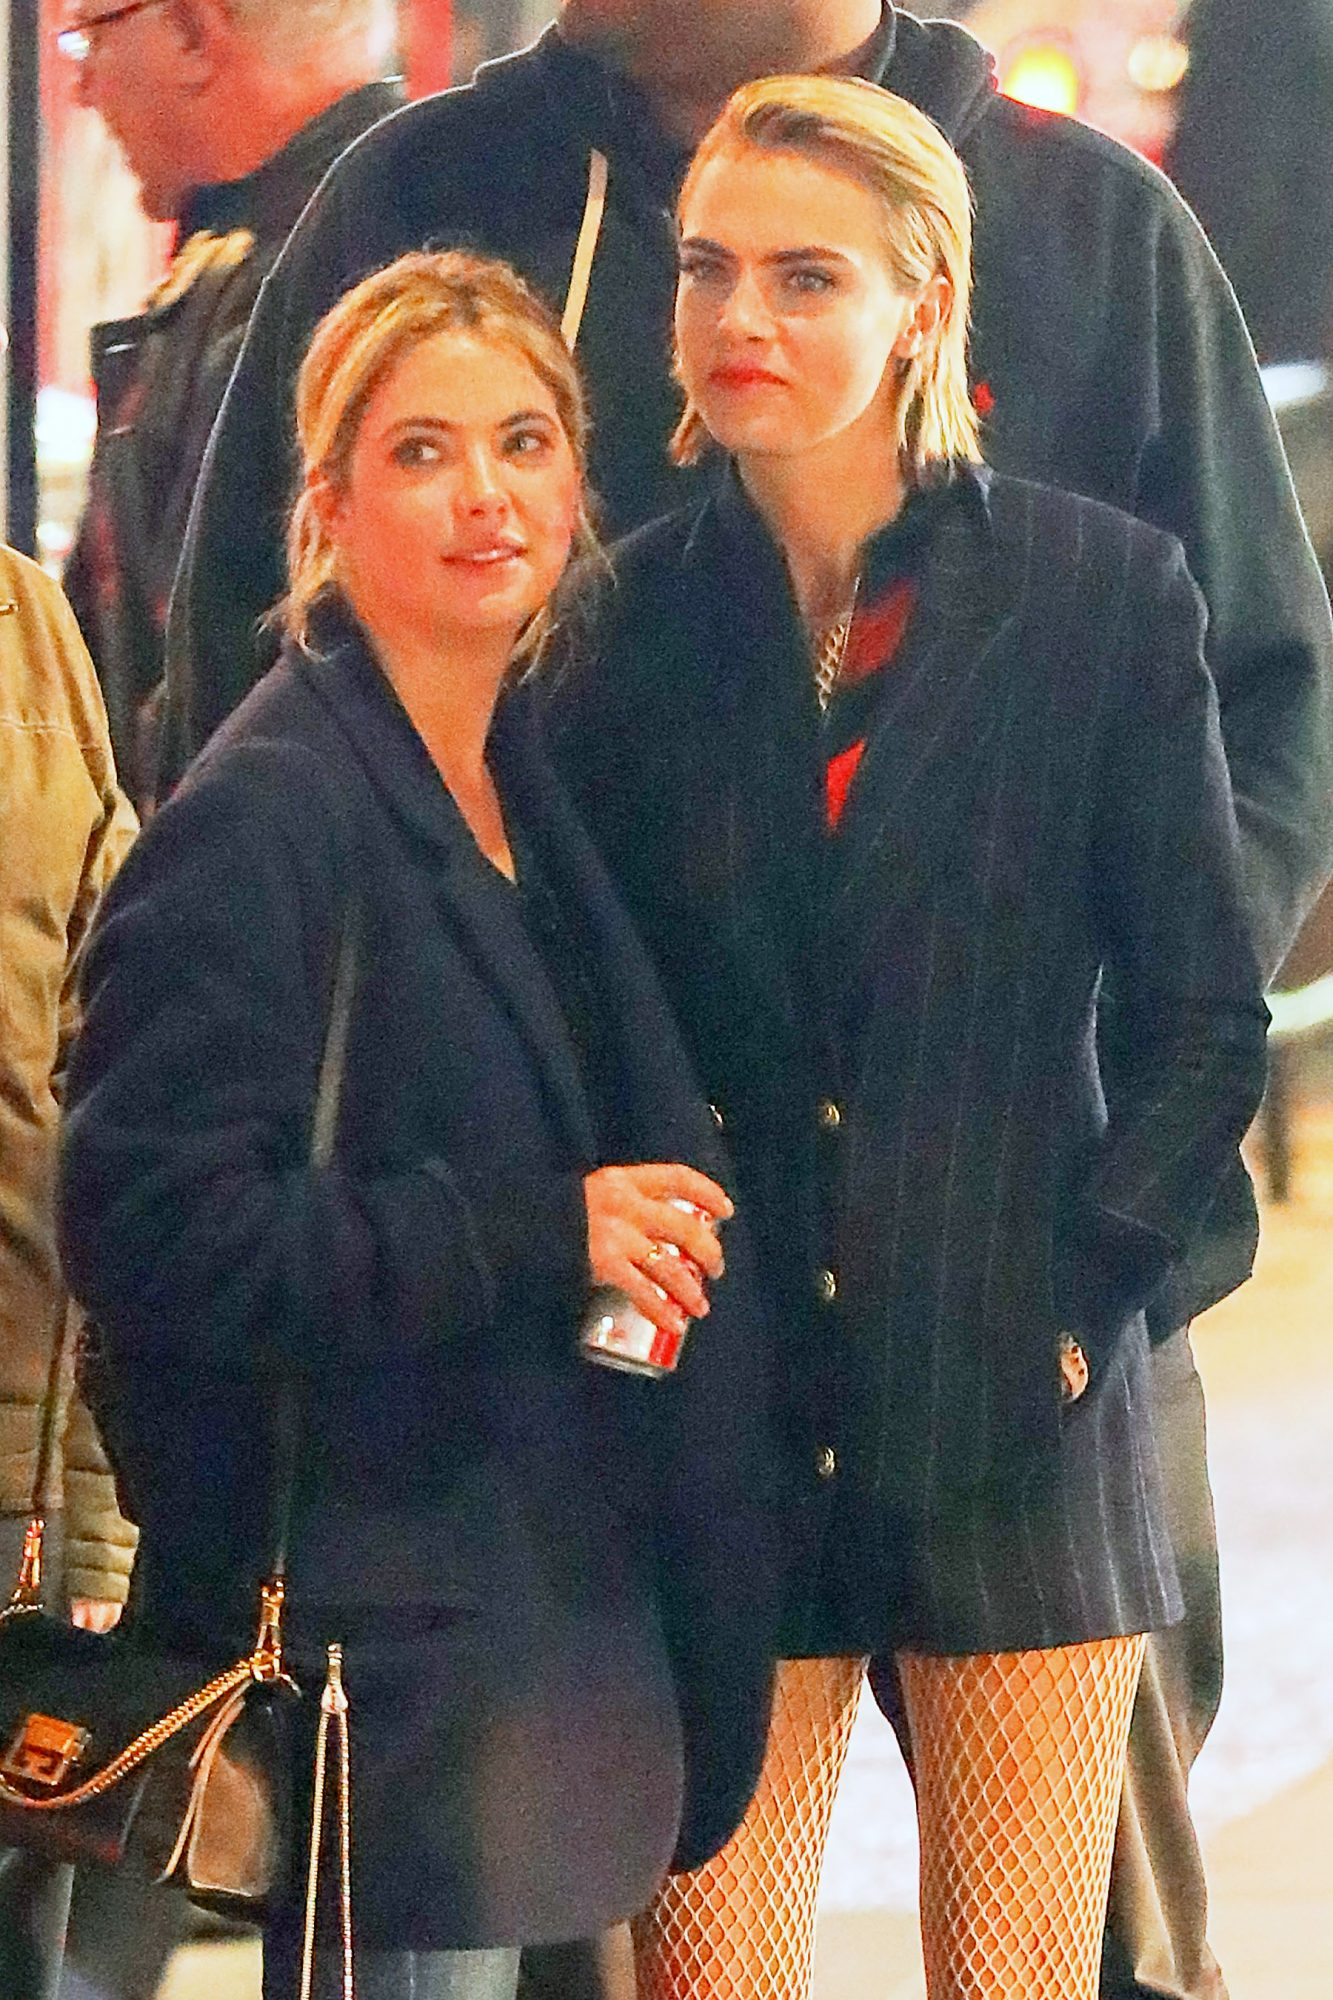 EXCLUSIVE: Cara Delevingne gets visit at the work by her girlfriend Ashley Benson in New York City